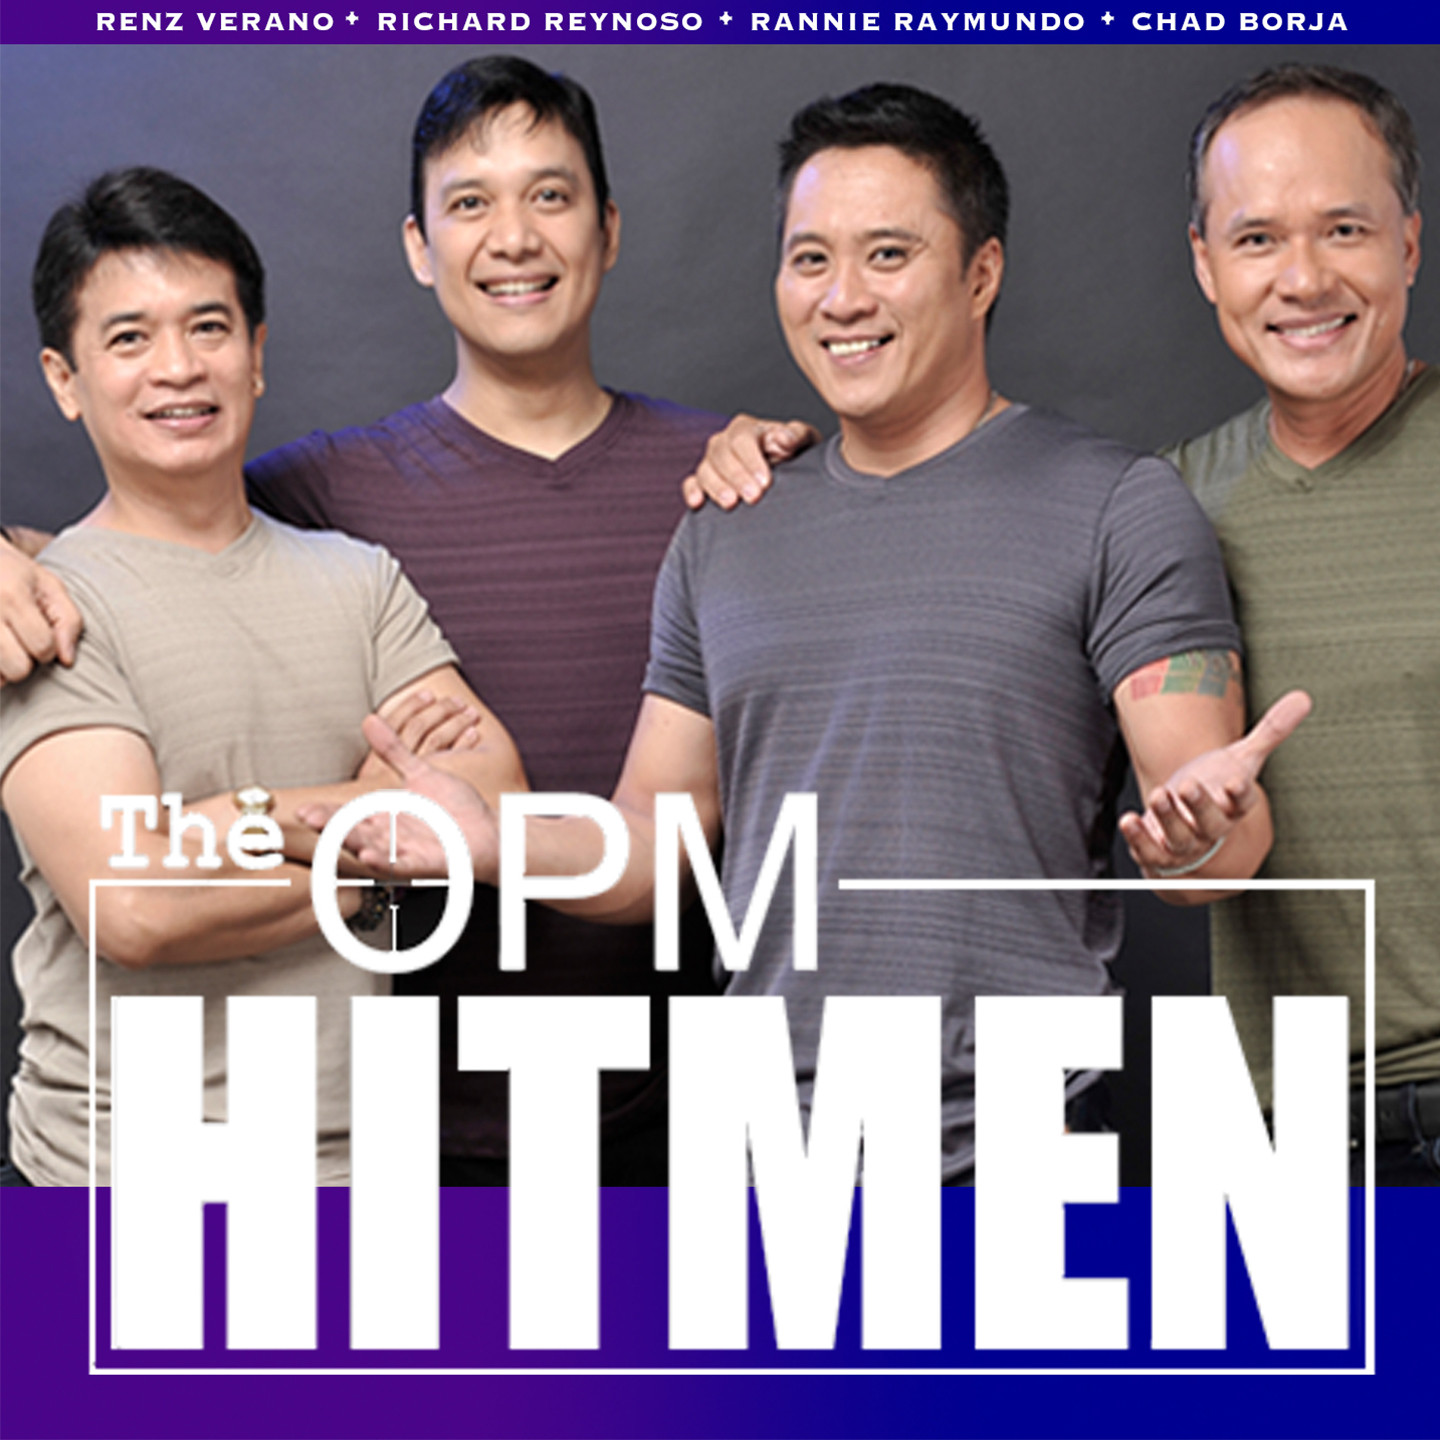 The OPM Hitmen 1440X1440.jpg